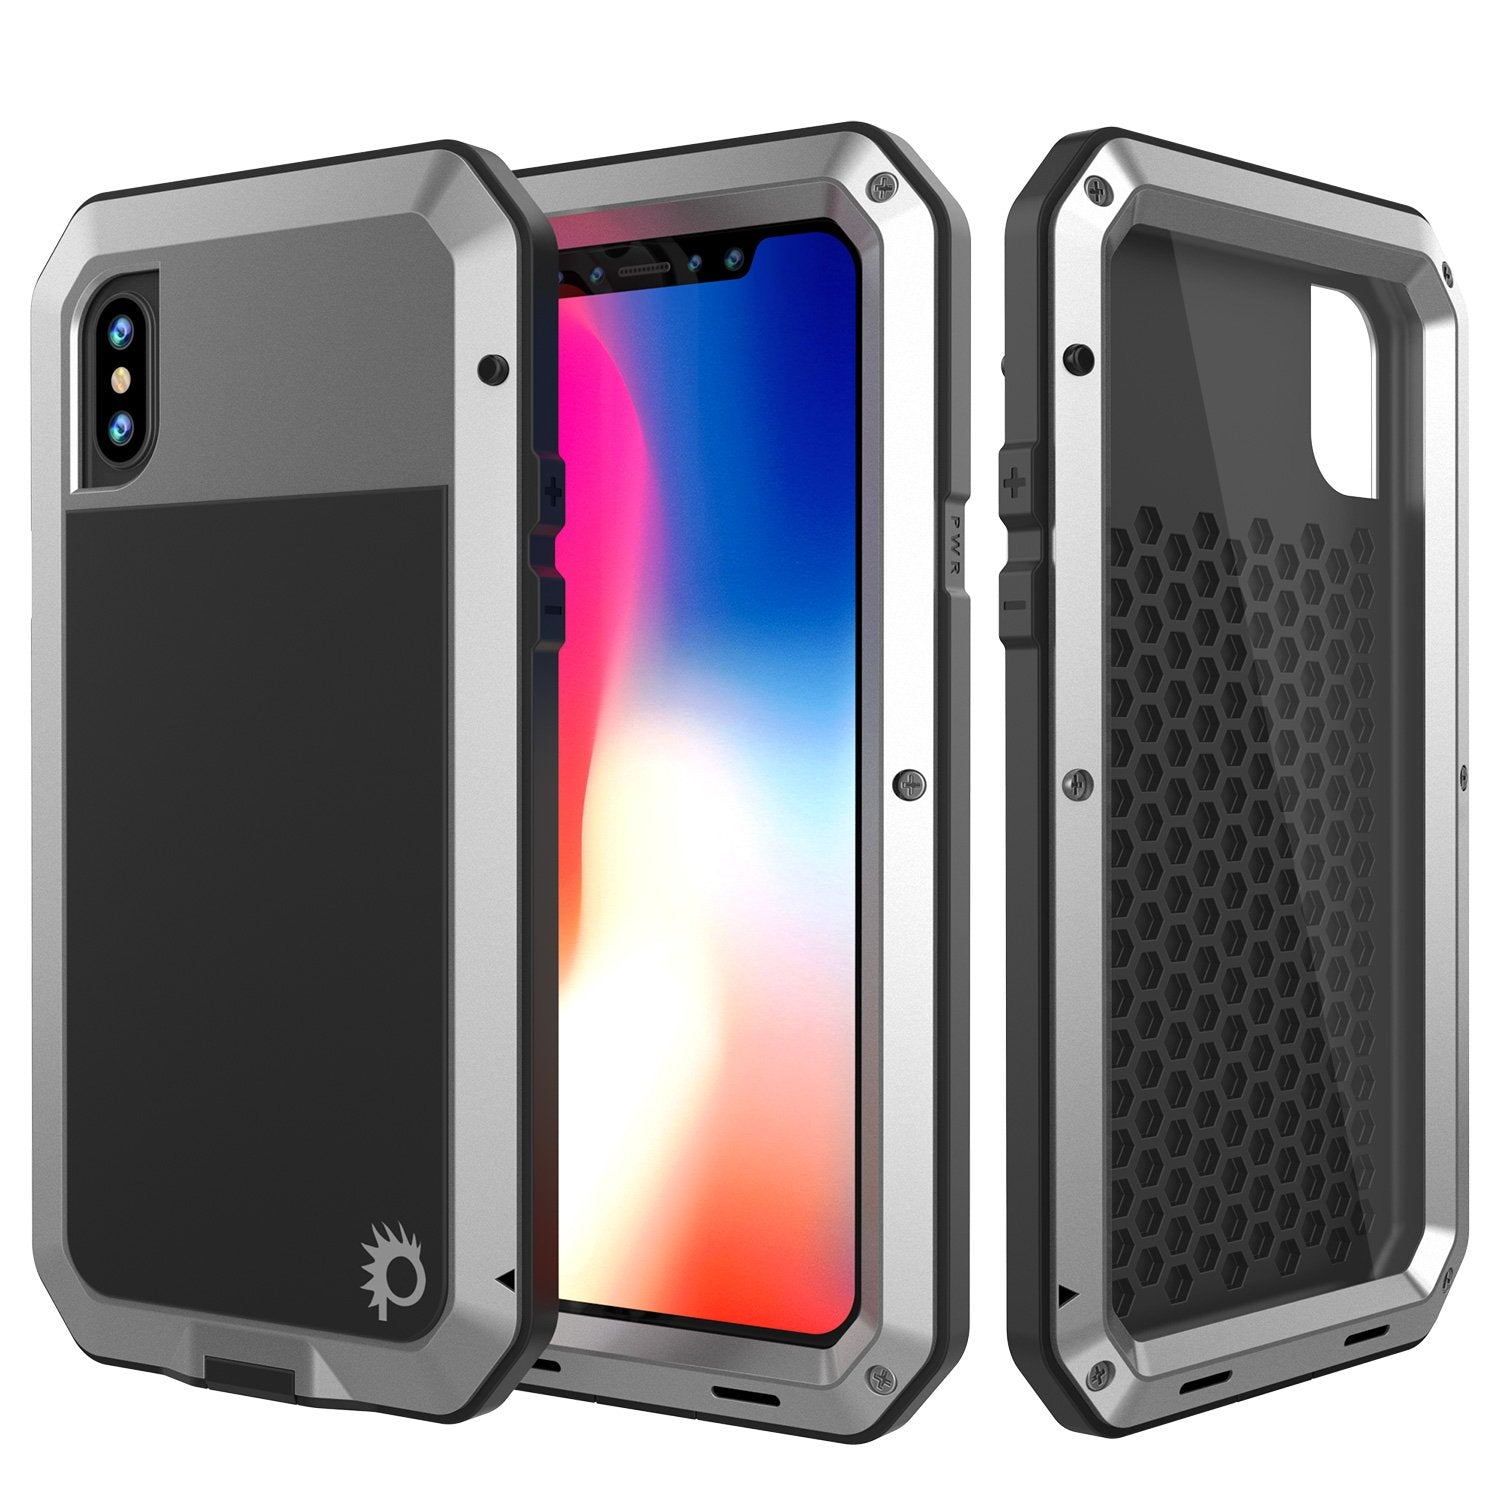 iPhone X Metal Case, Heavy Duty Military Grade Rugged Armor Cover [shock proof] Hybrid Full Body Hard Aluminum & TPU Design [non slip] W/ Prime Drop Protection for Apple iPhone 10 [Silver]